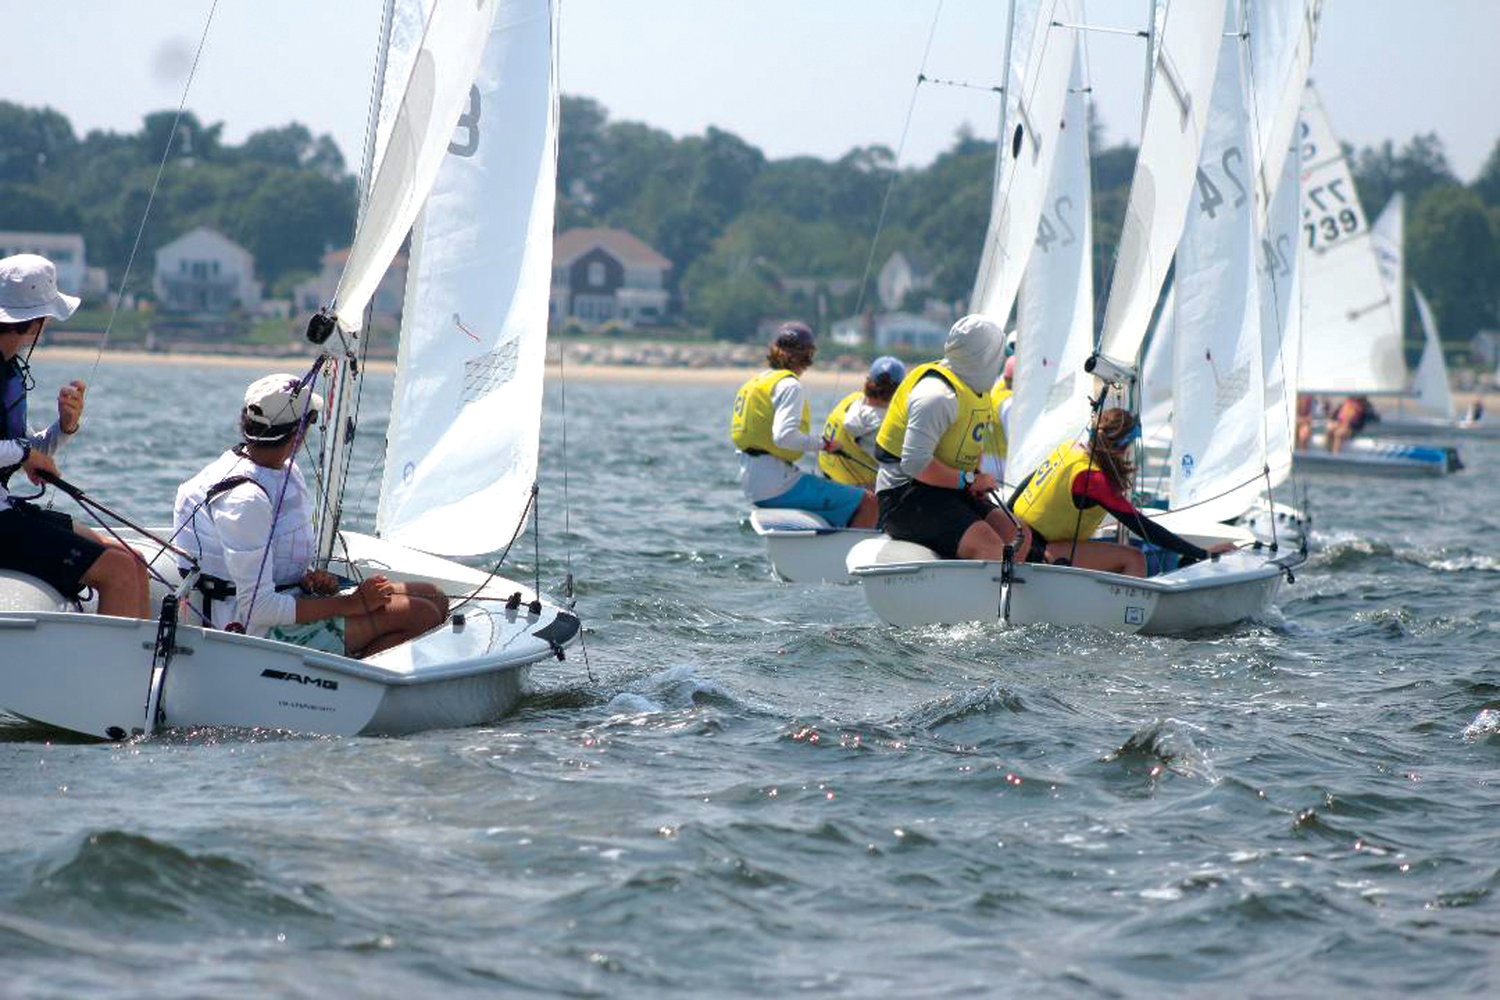 AND THEY'RE OFF: Sailors take off at the beginning of a race.